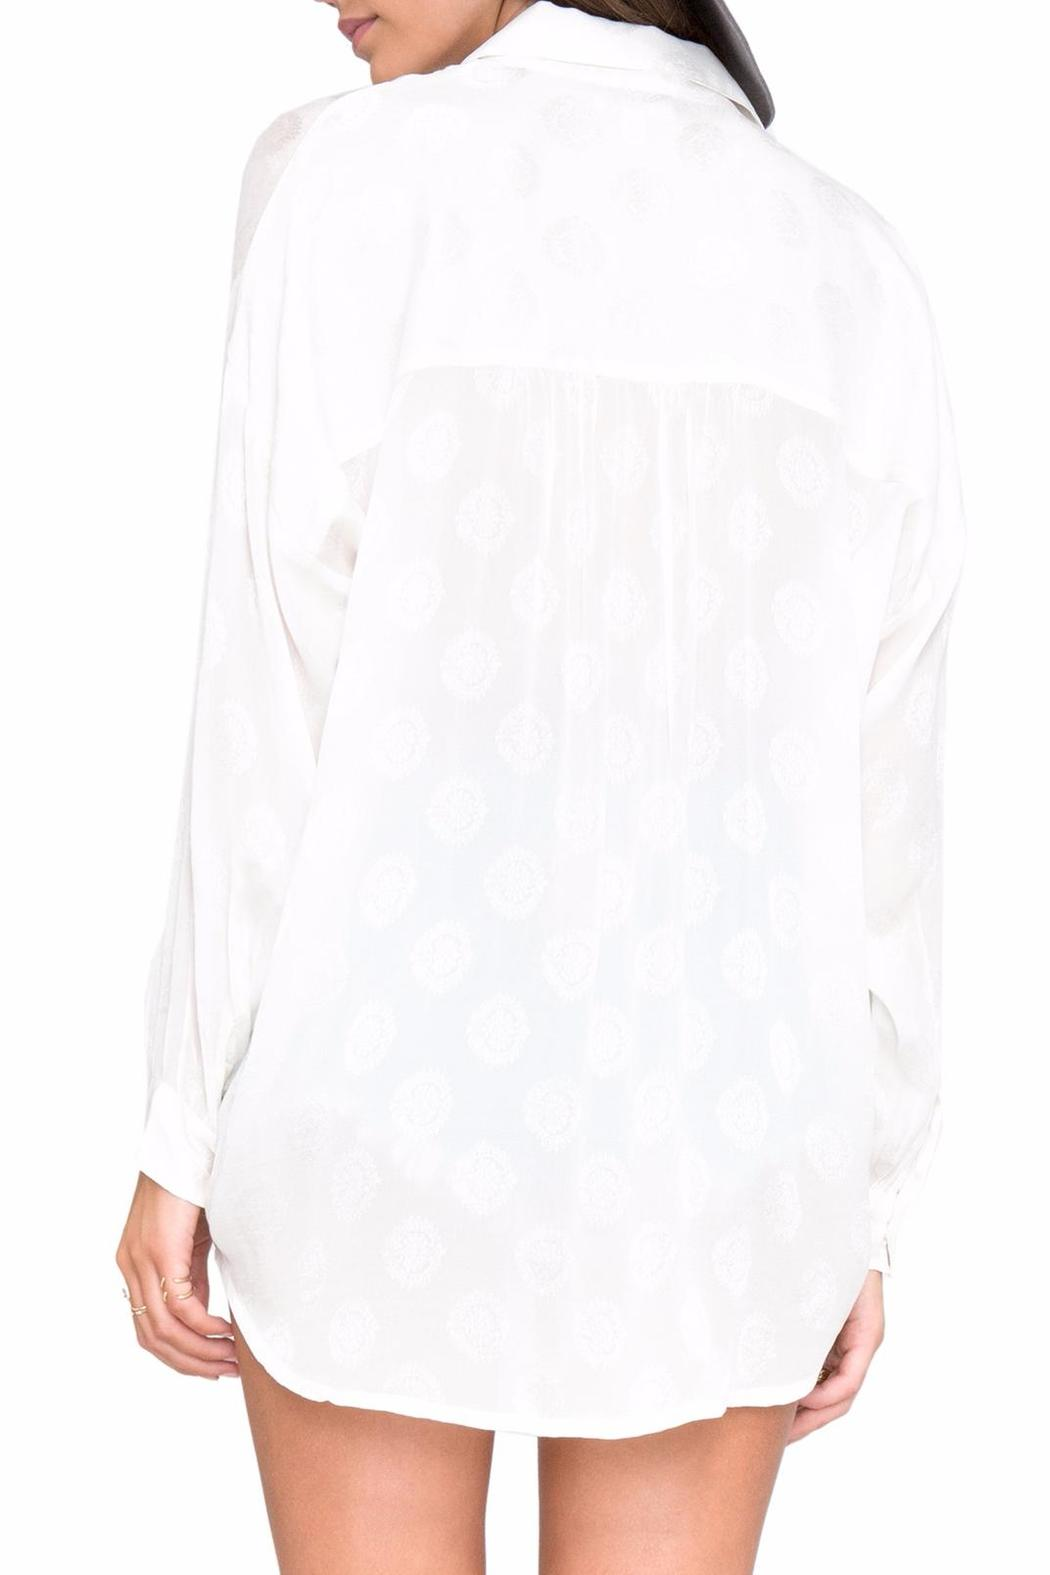 AMUSE SOCIETY Tahara Woven Top - Side Cropped Image